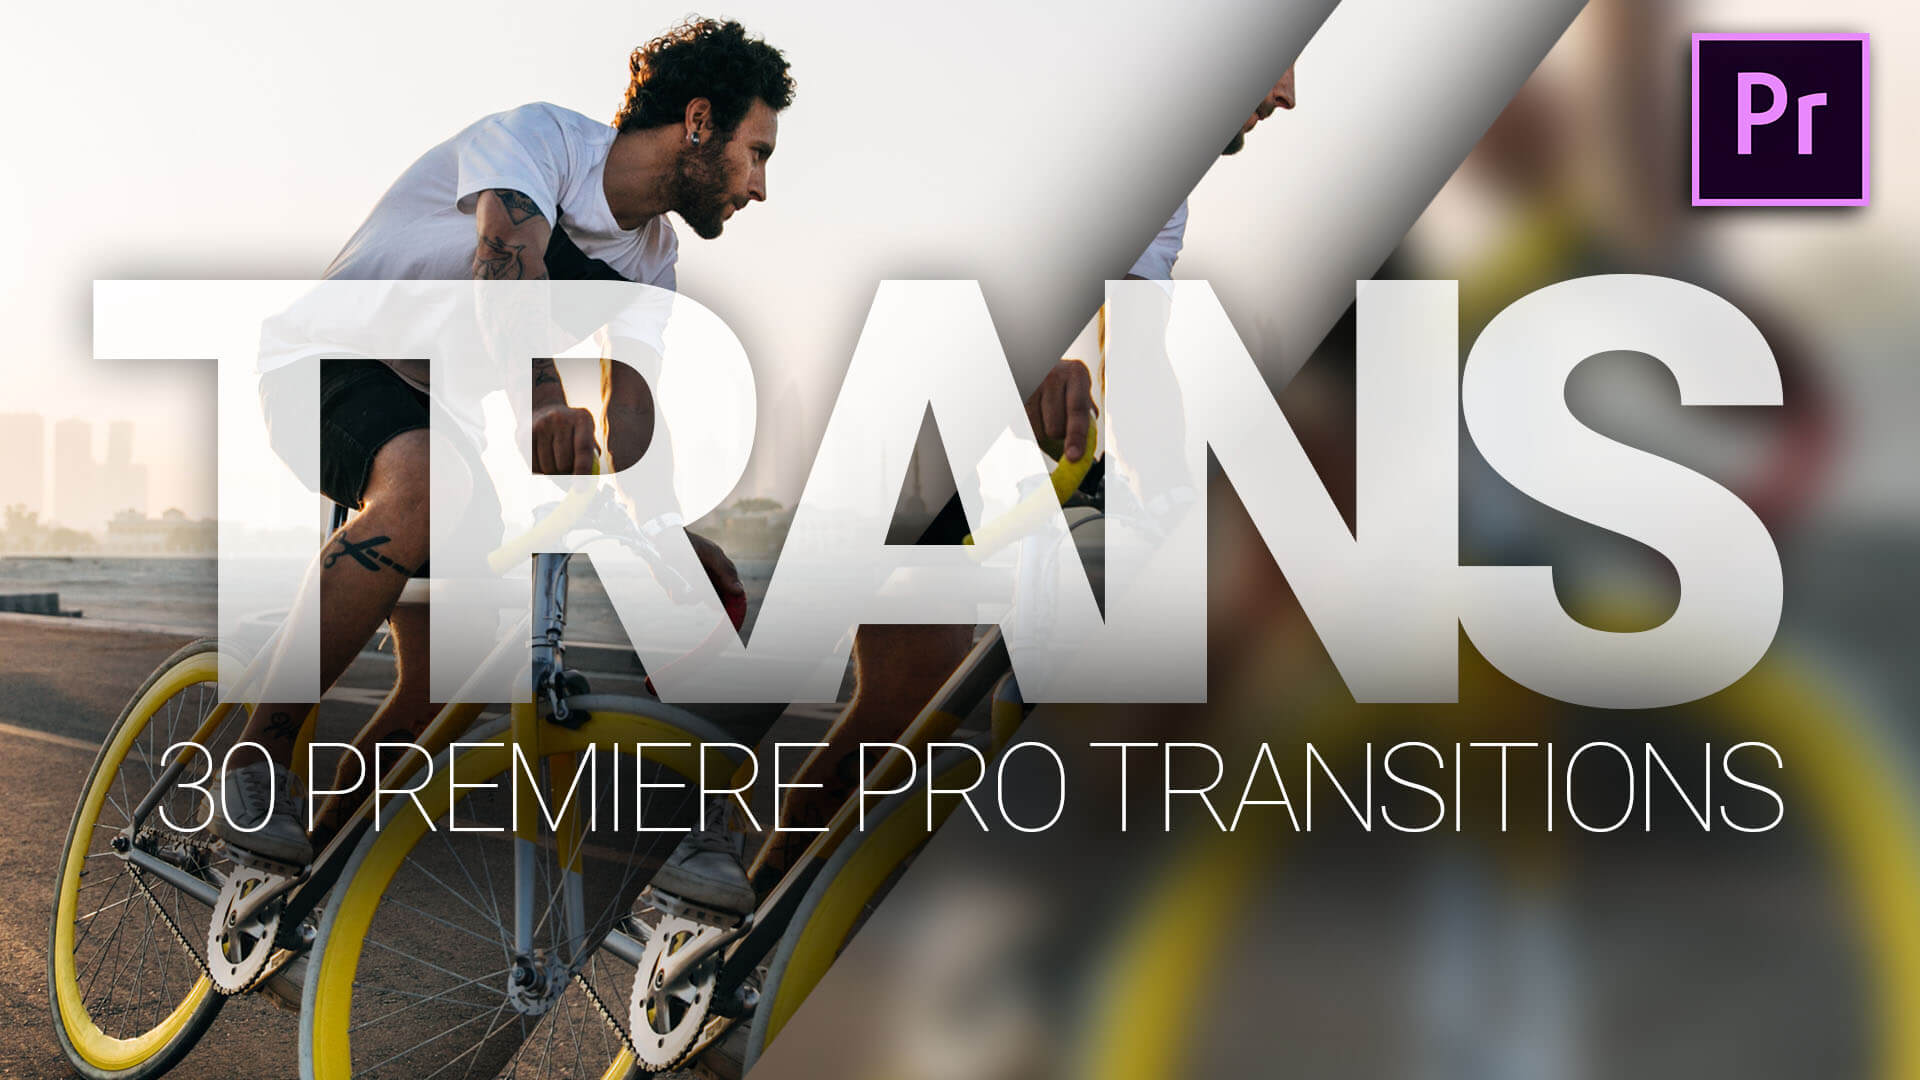 TRANS - Premiere Pro Transition Pack